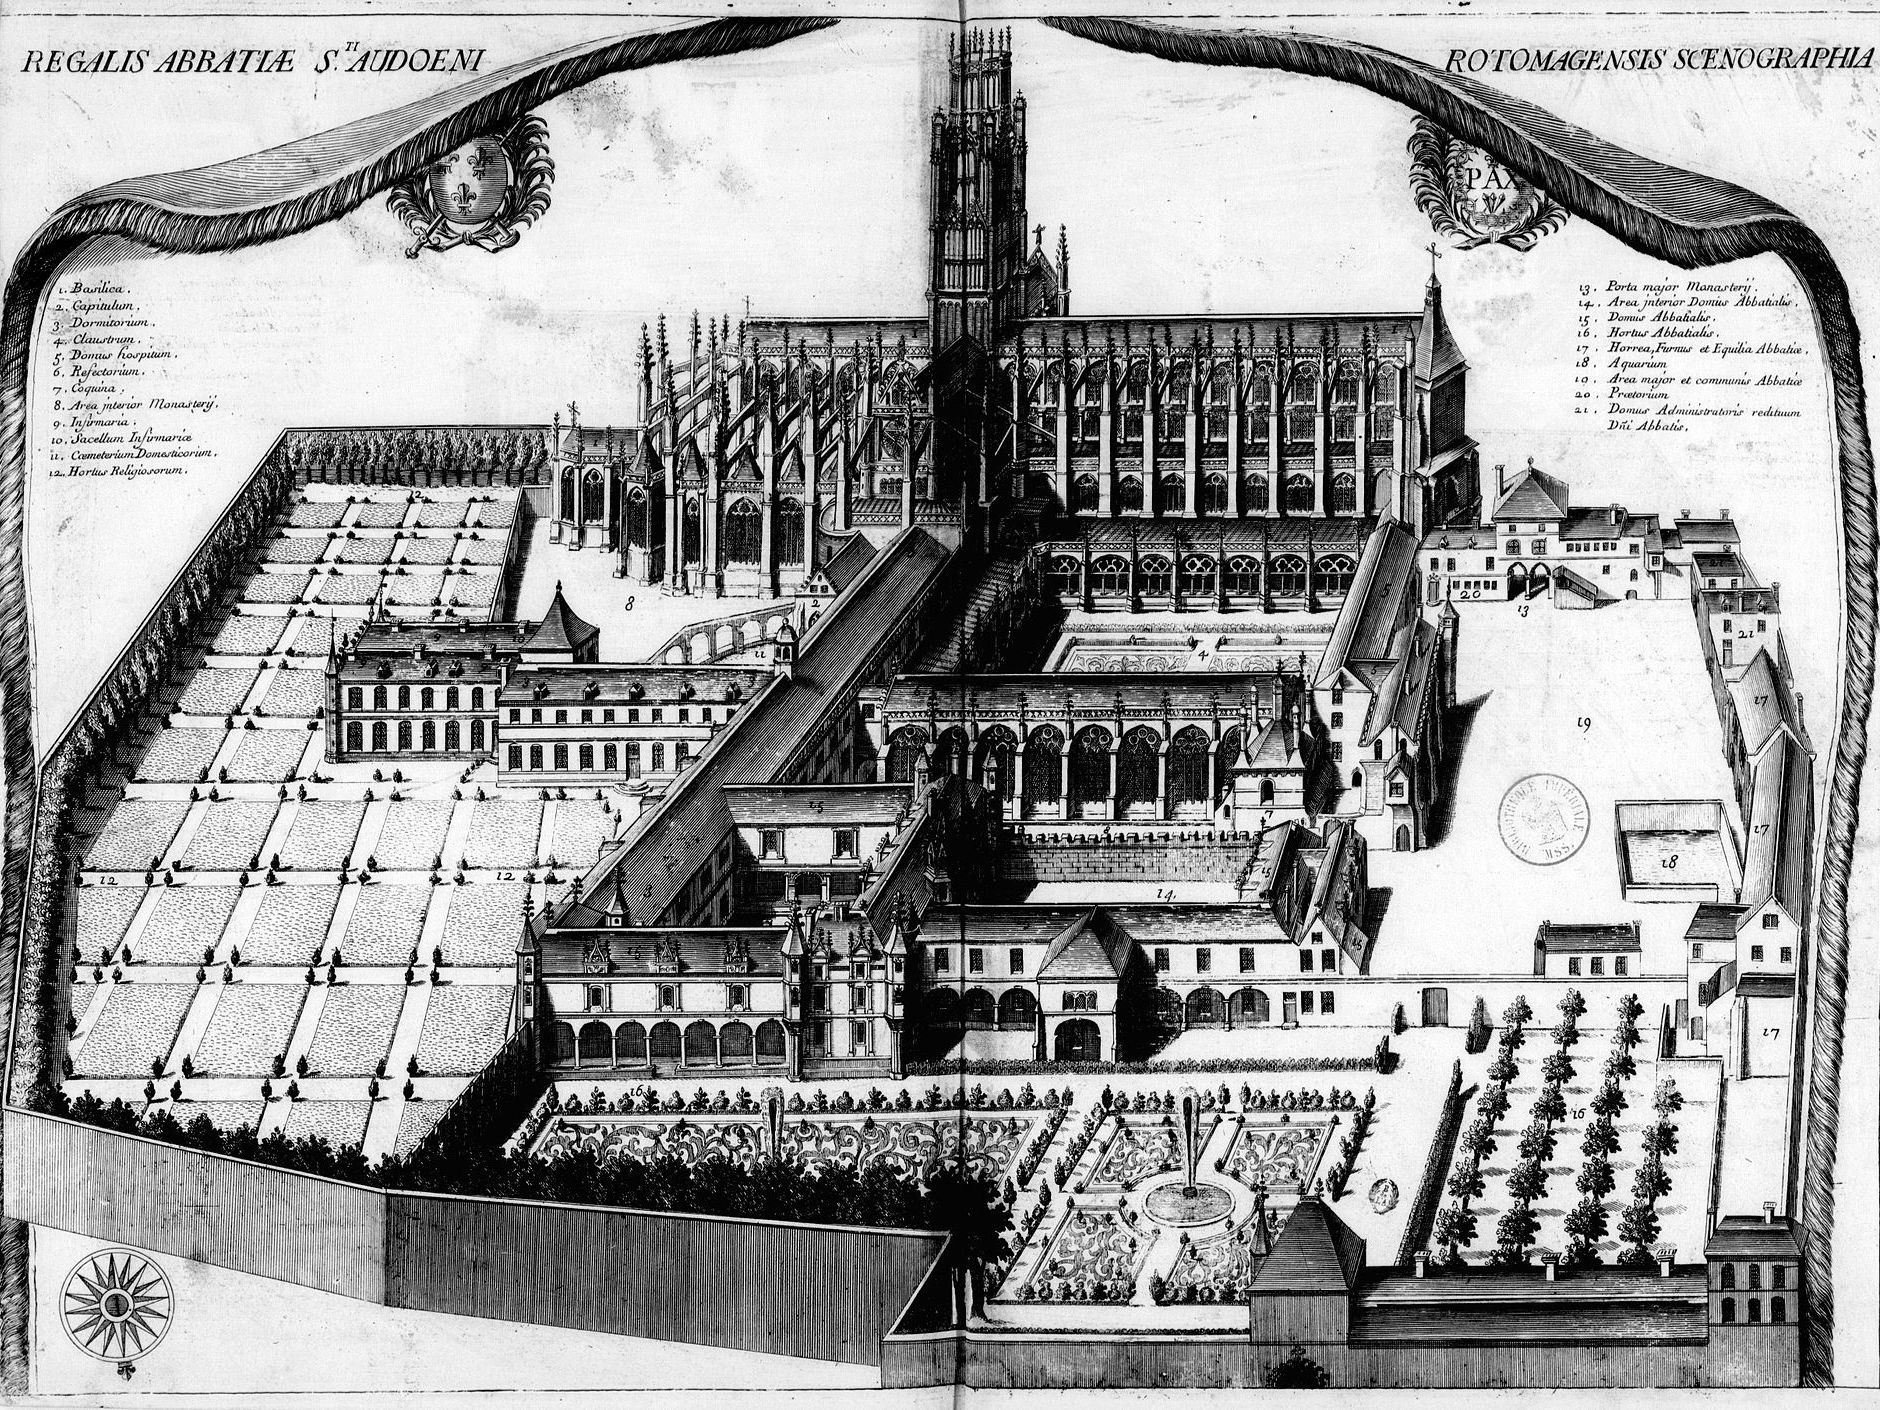 Abbey of Saint-Ouen in the 17th century